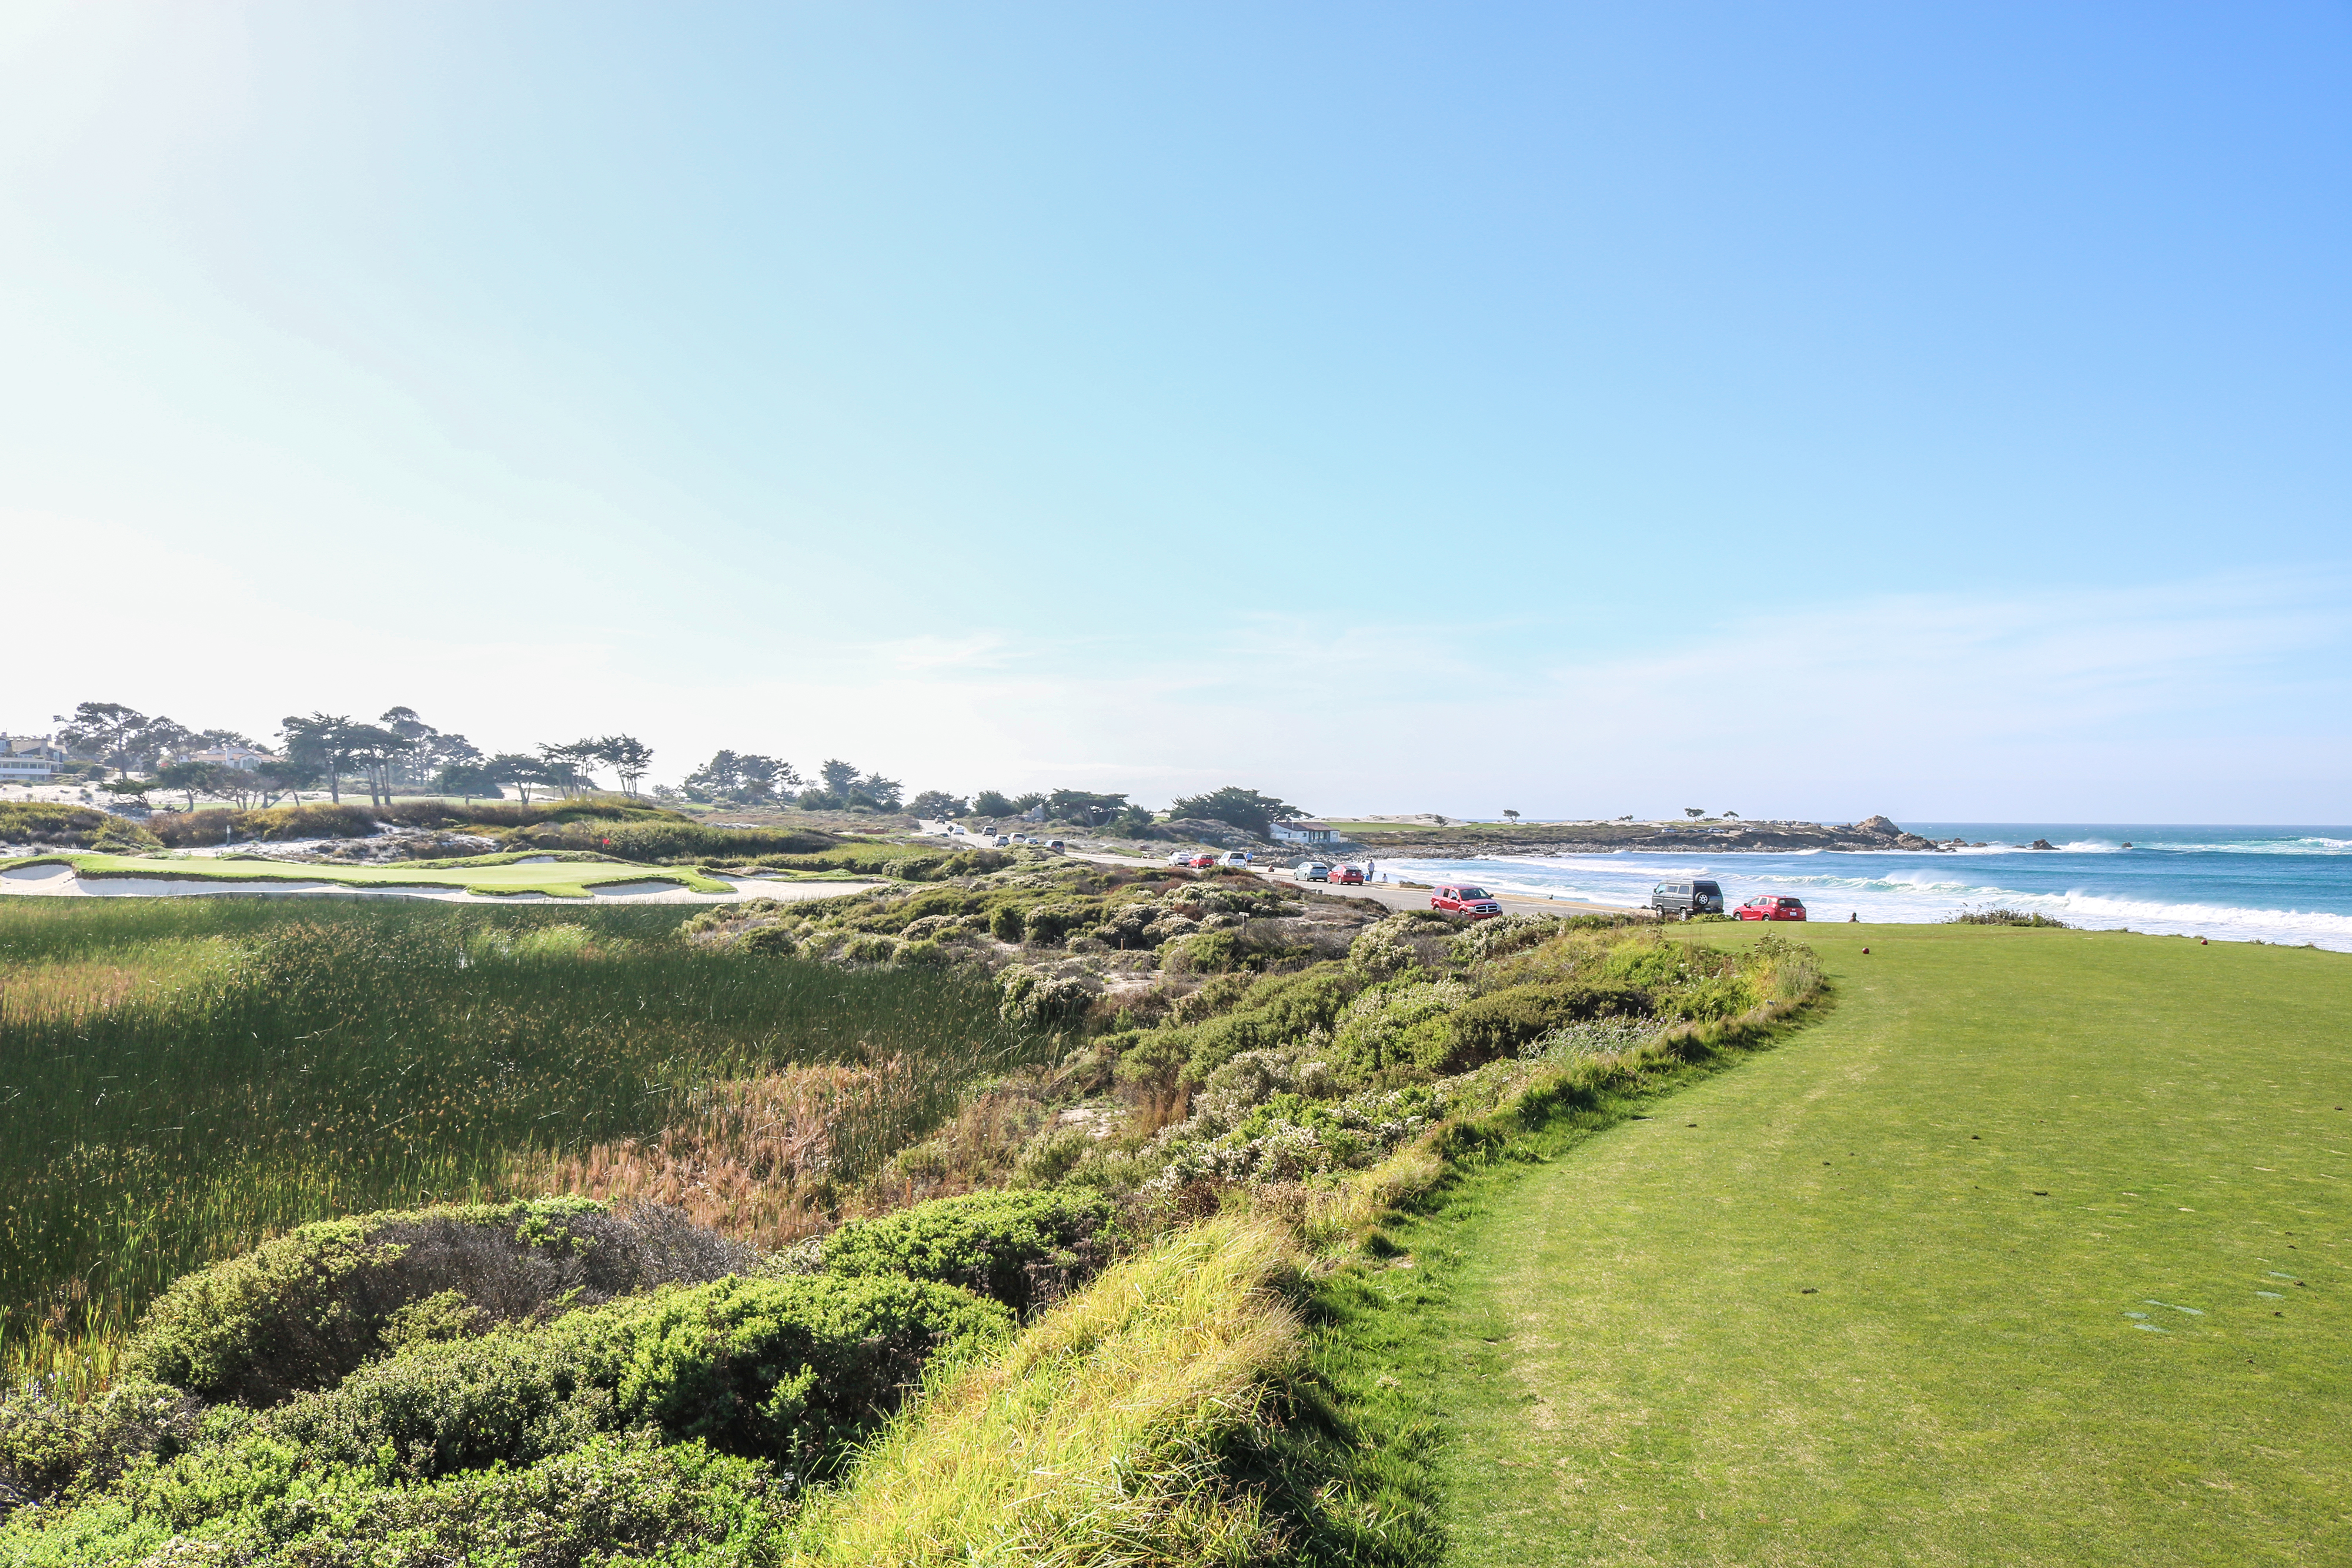 8th hole at Spanish Bay